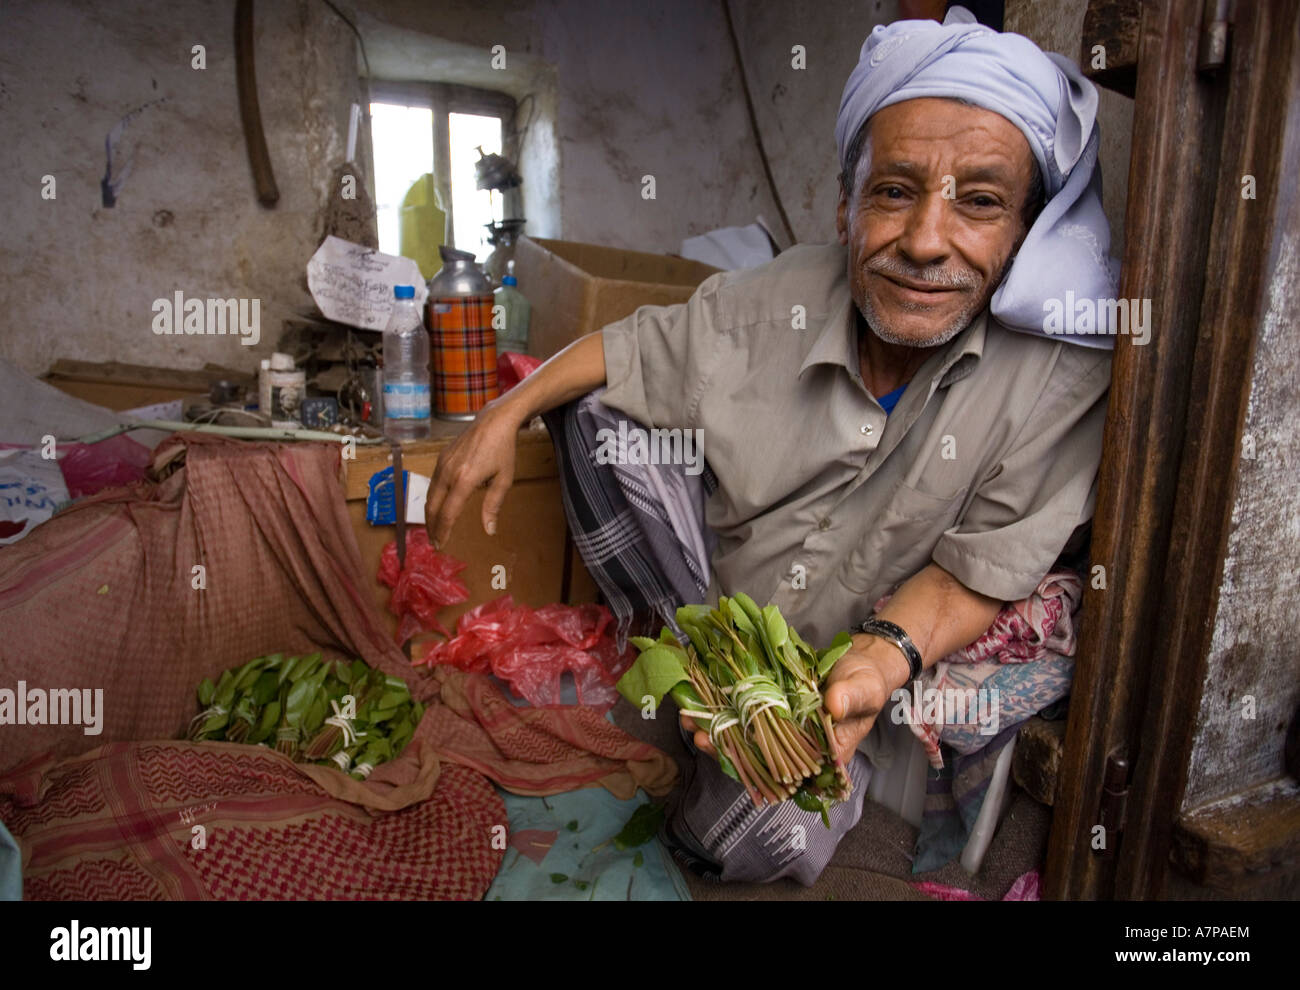 The infamous mild narcotic 'Qat' for sale on the streets of Jibla mountain village, Yemen - Stock Image